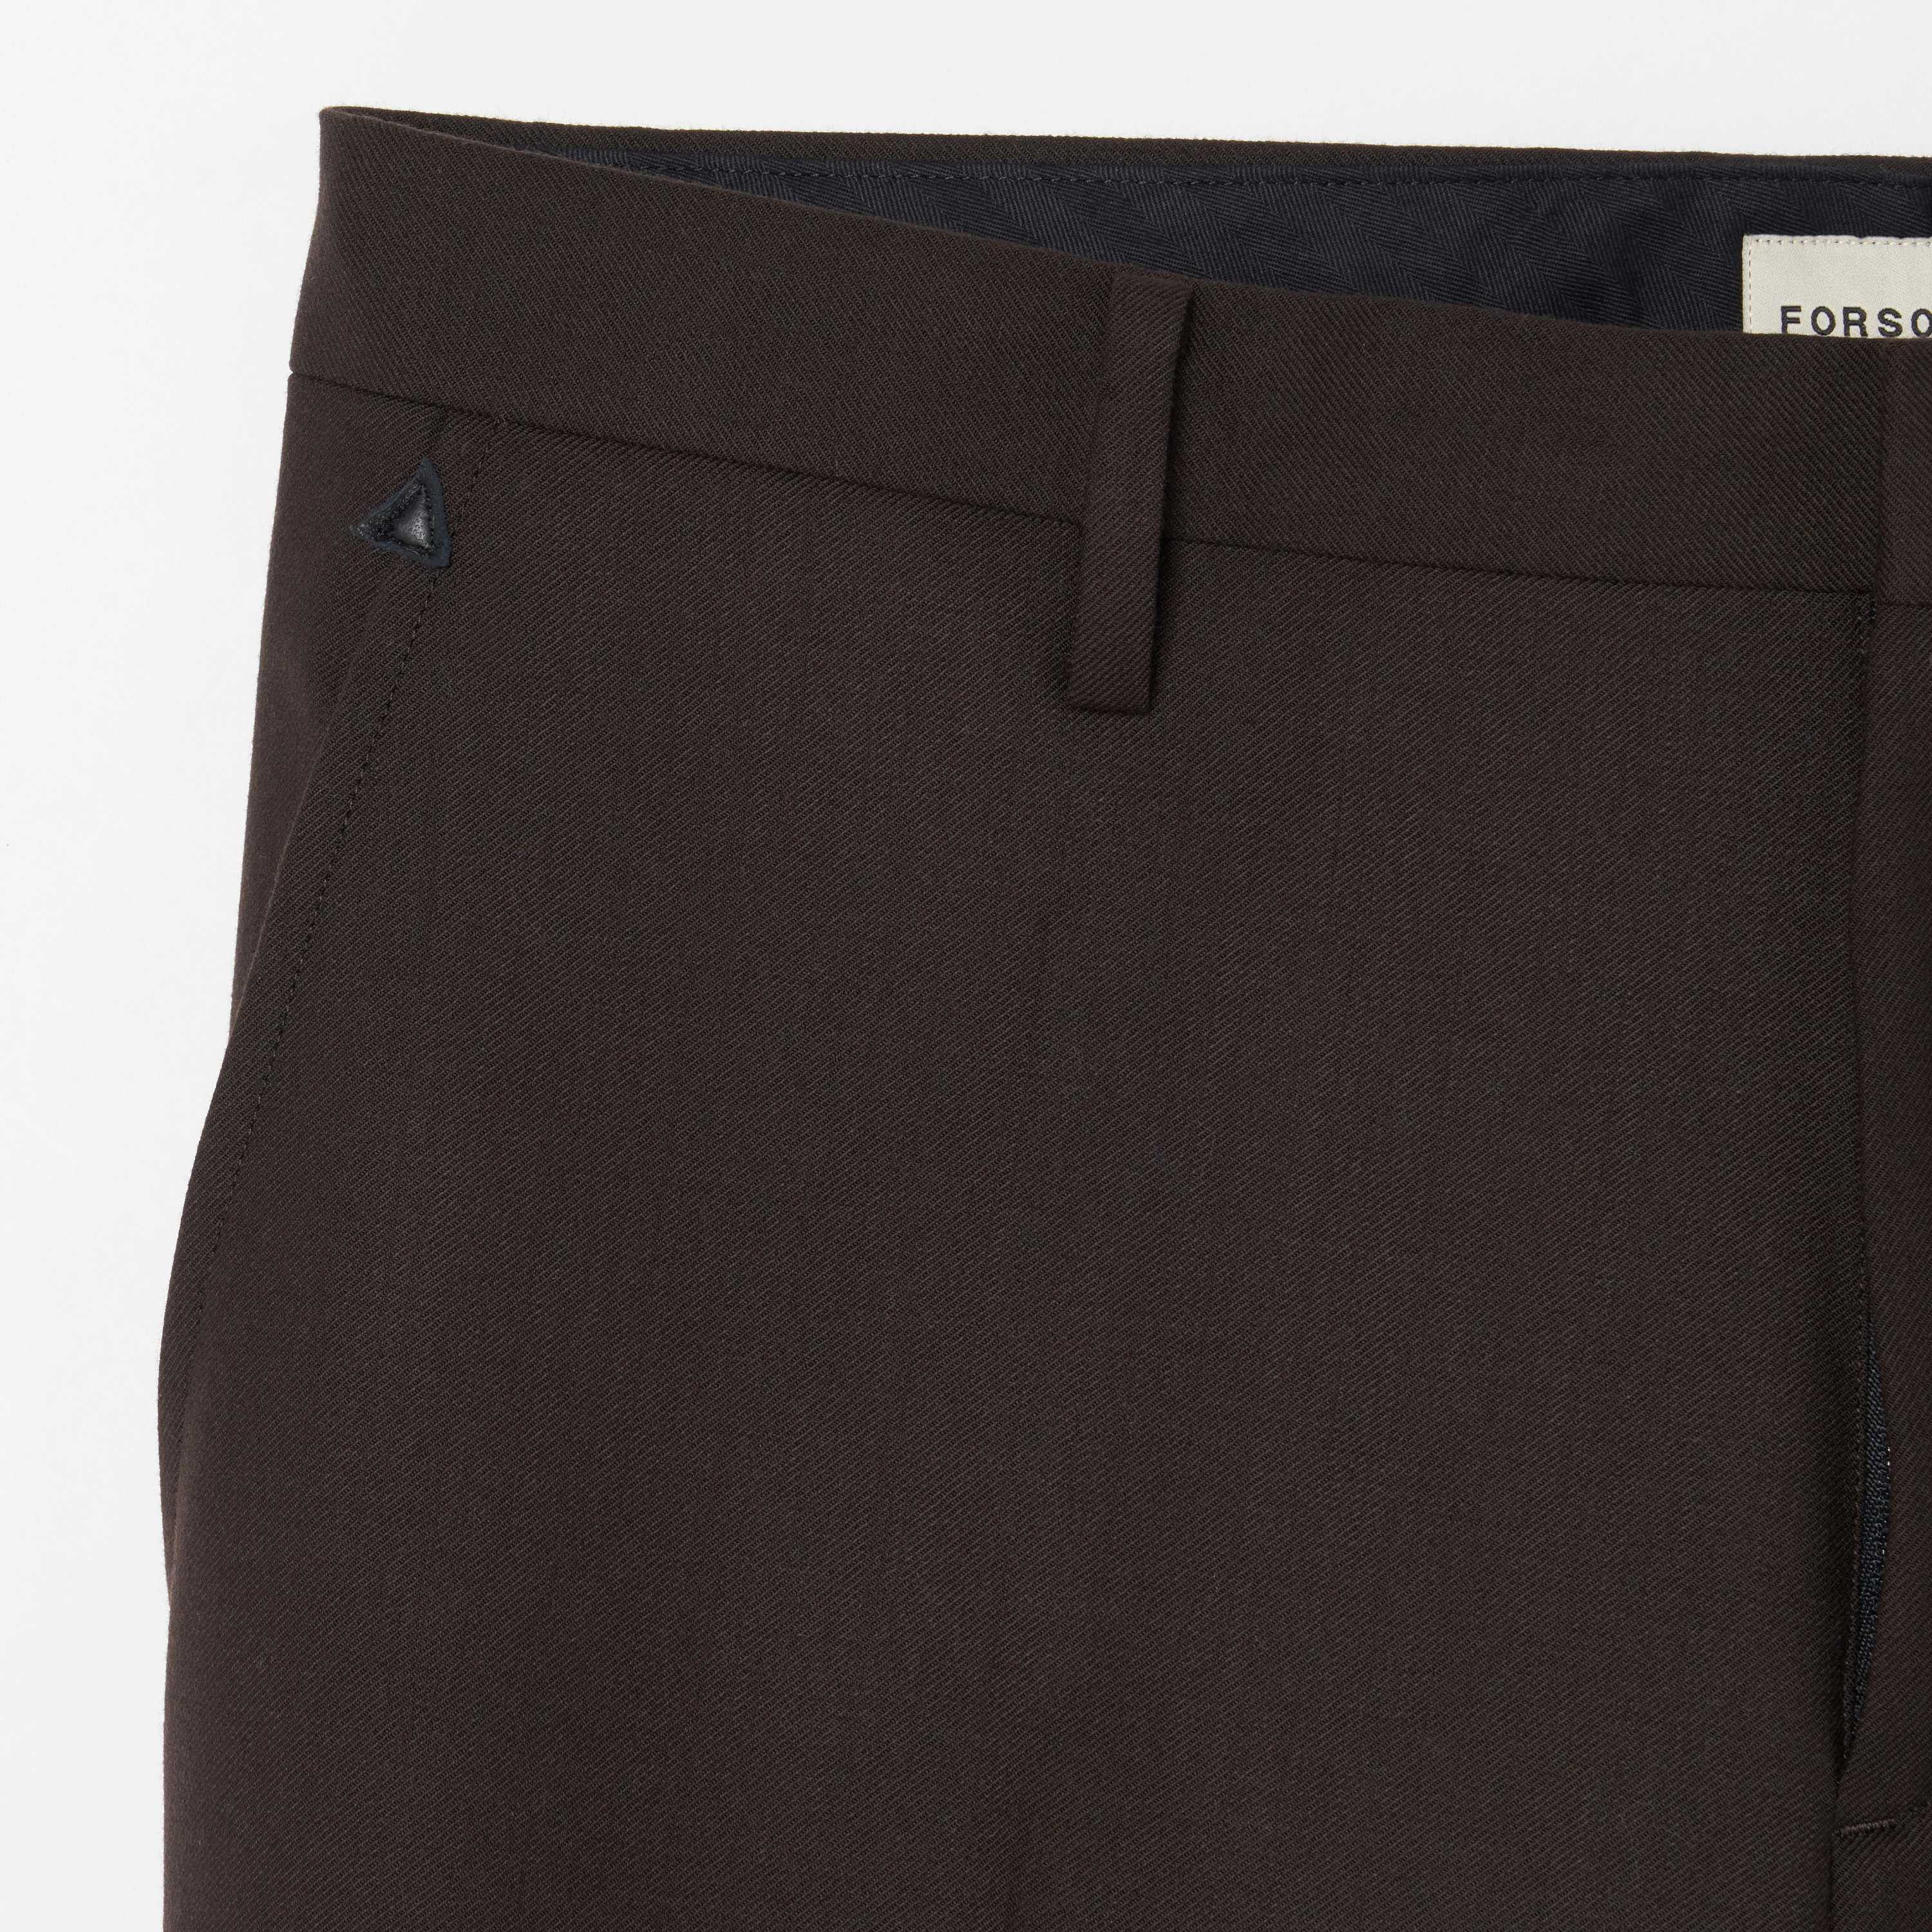 ADAM SUIT SOLID TROUSERS 詳細画像 Brown 9